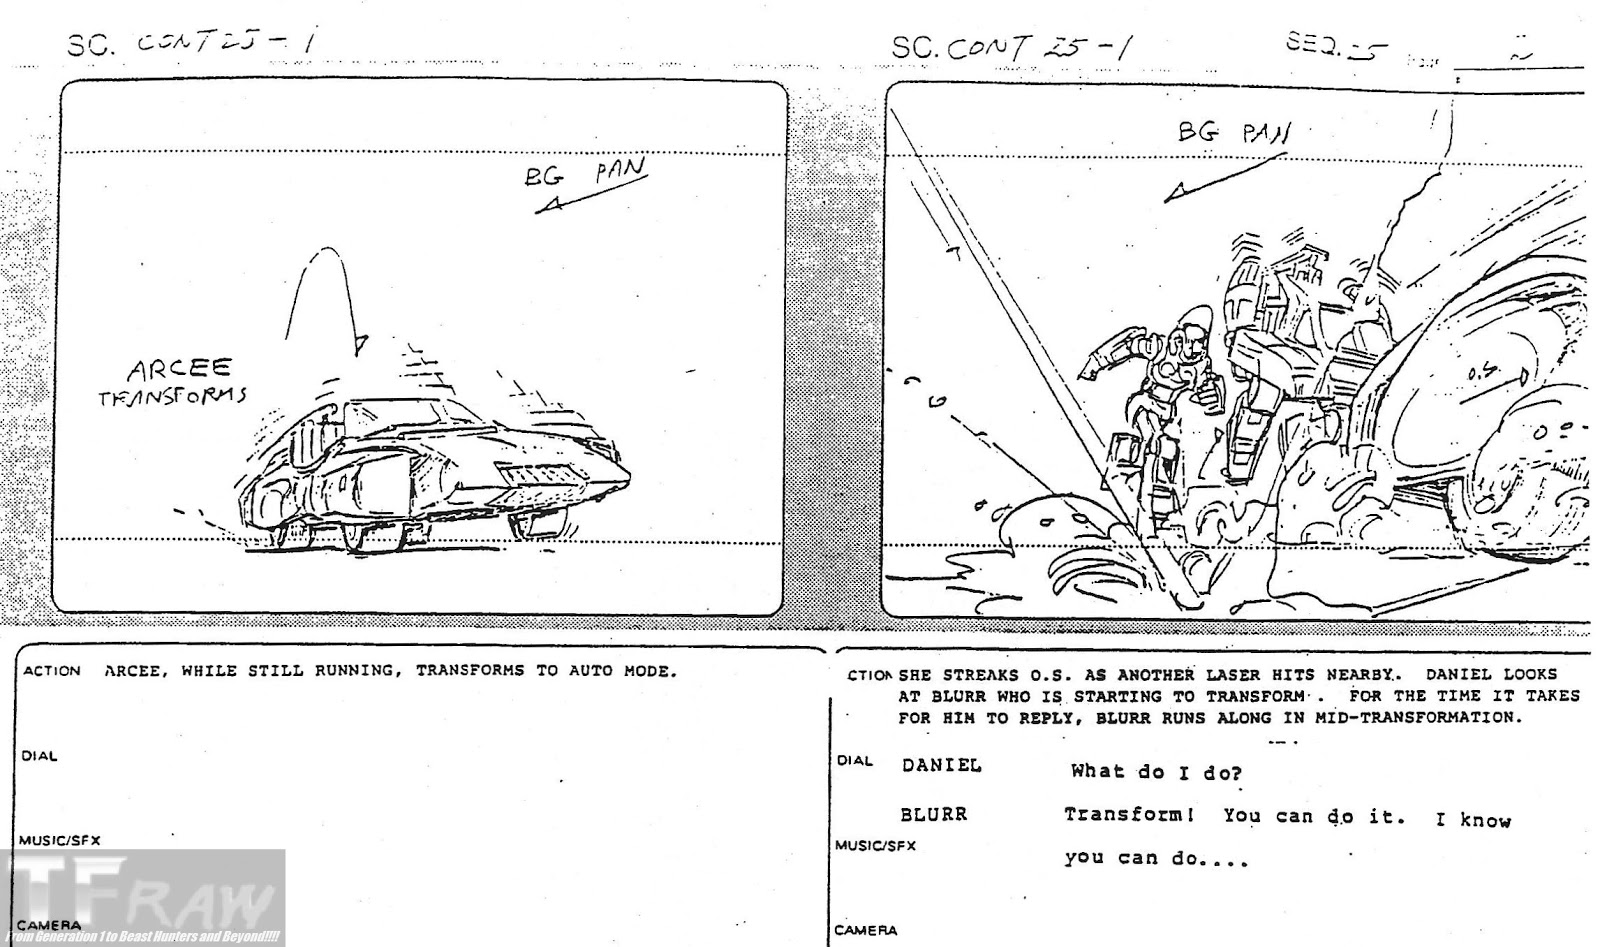 TF RAW!!!! Transformers Media Archive: Sequence 25